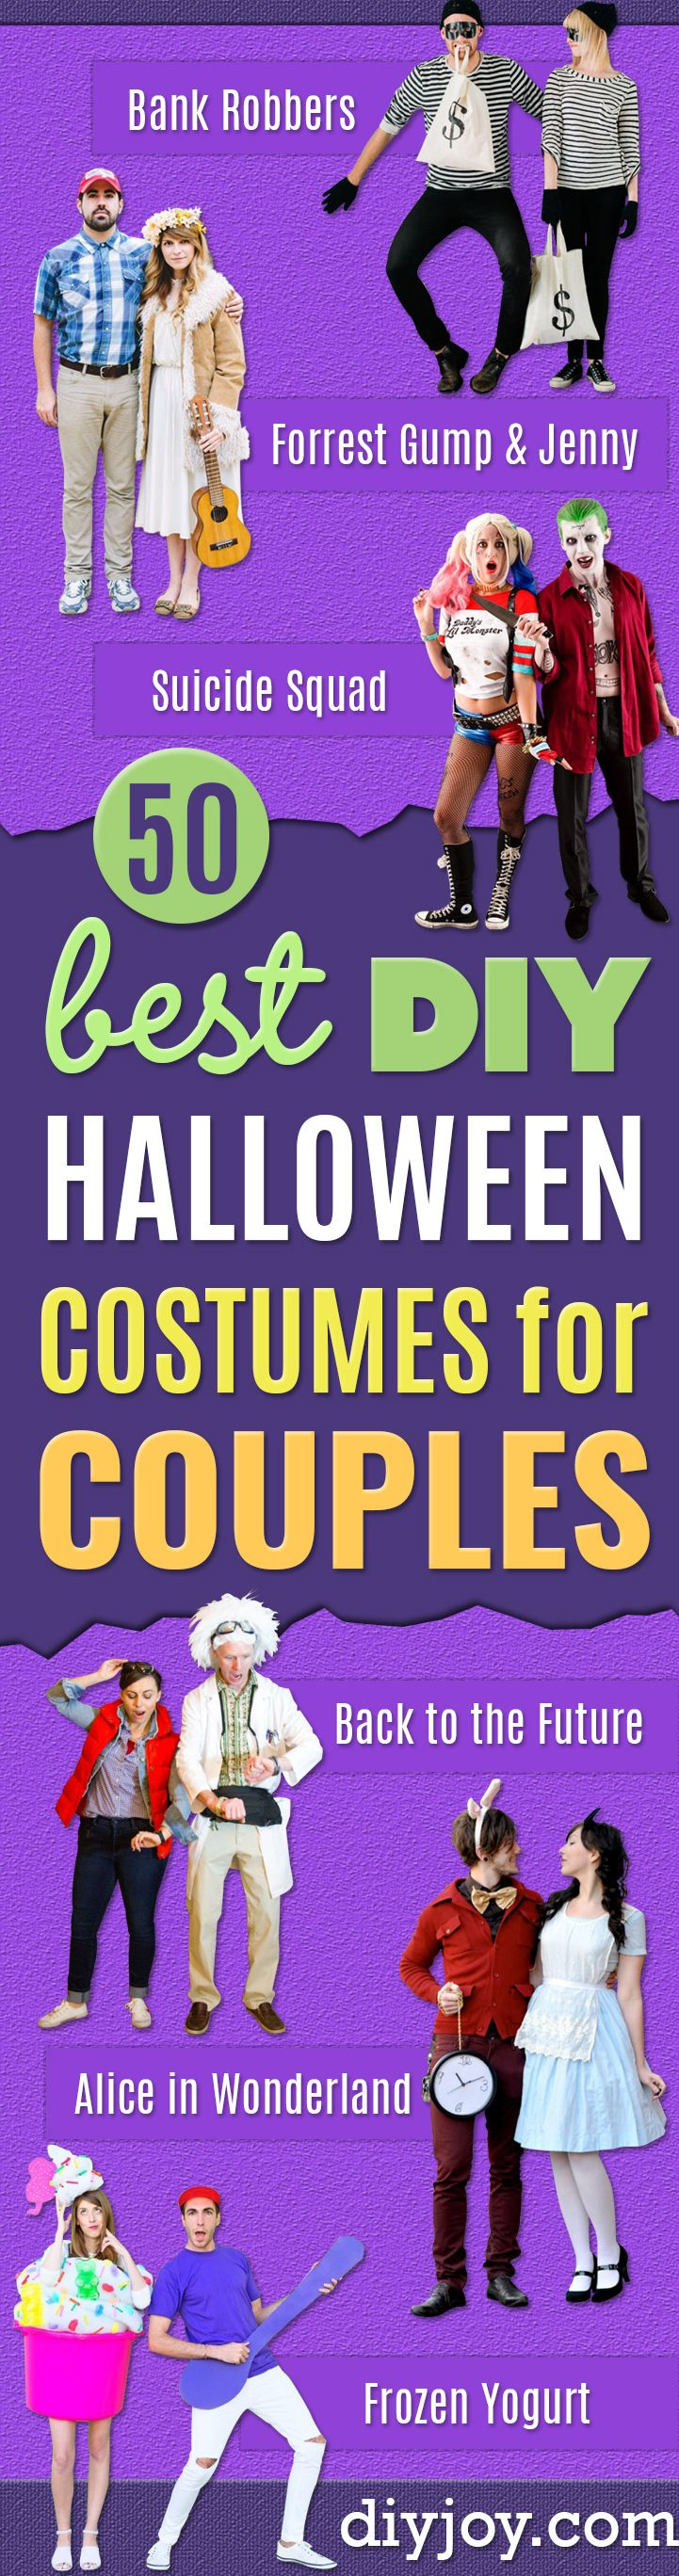 DIY Halloween Costumes for Couples - Funny, Creative and Scary Ideas for Parties, College Party - Unique and Cute Project Idea for Disney Characters, Superhero, Movie Themes, Bonnie and Clyde, Homemade Costume Projects for Boyfriends - Quick Last Minutes Halloween Costume Ideas from Pinterest